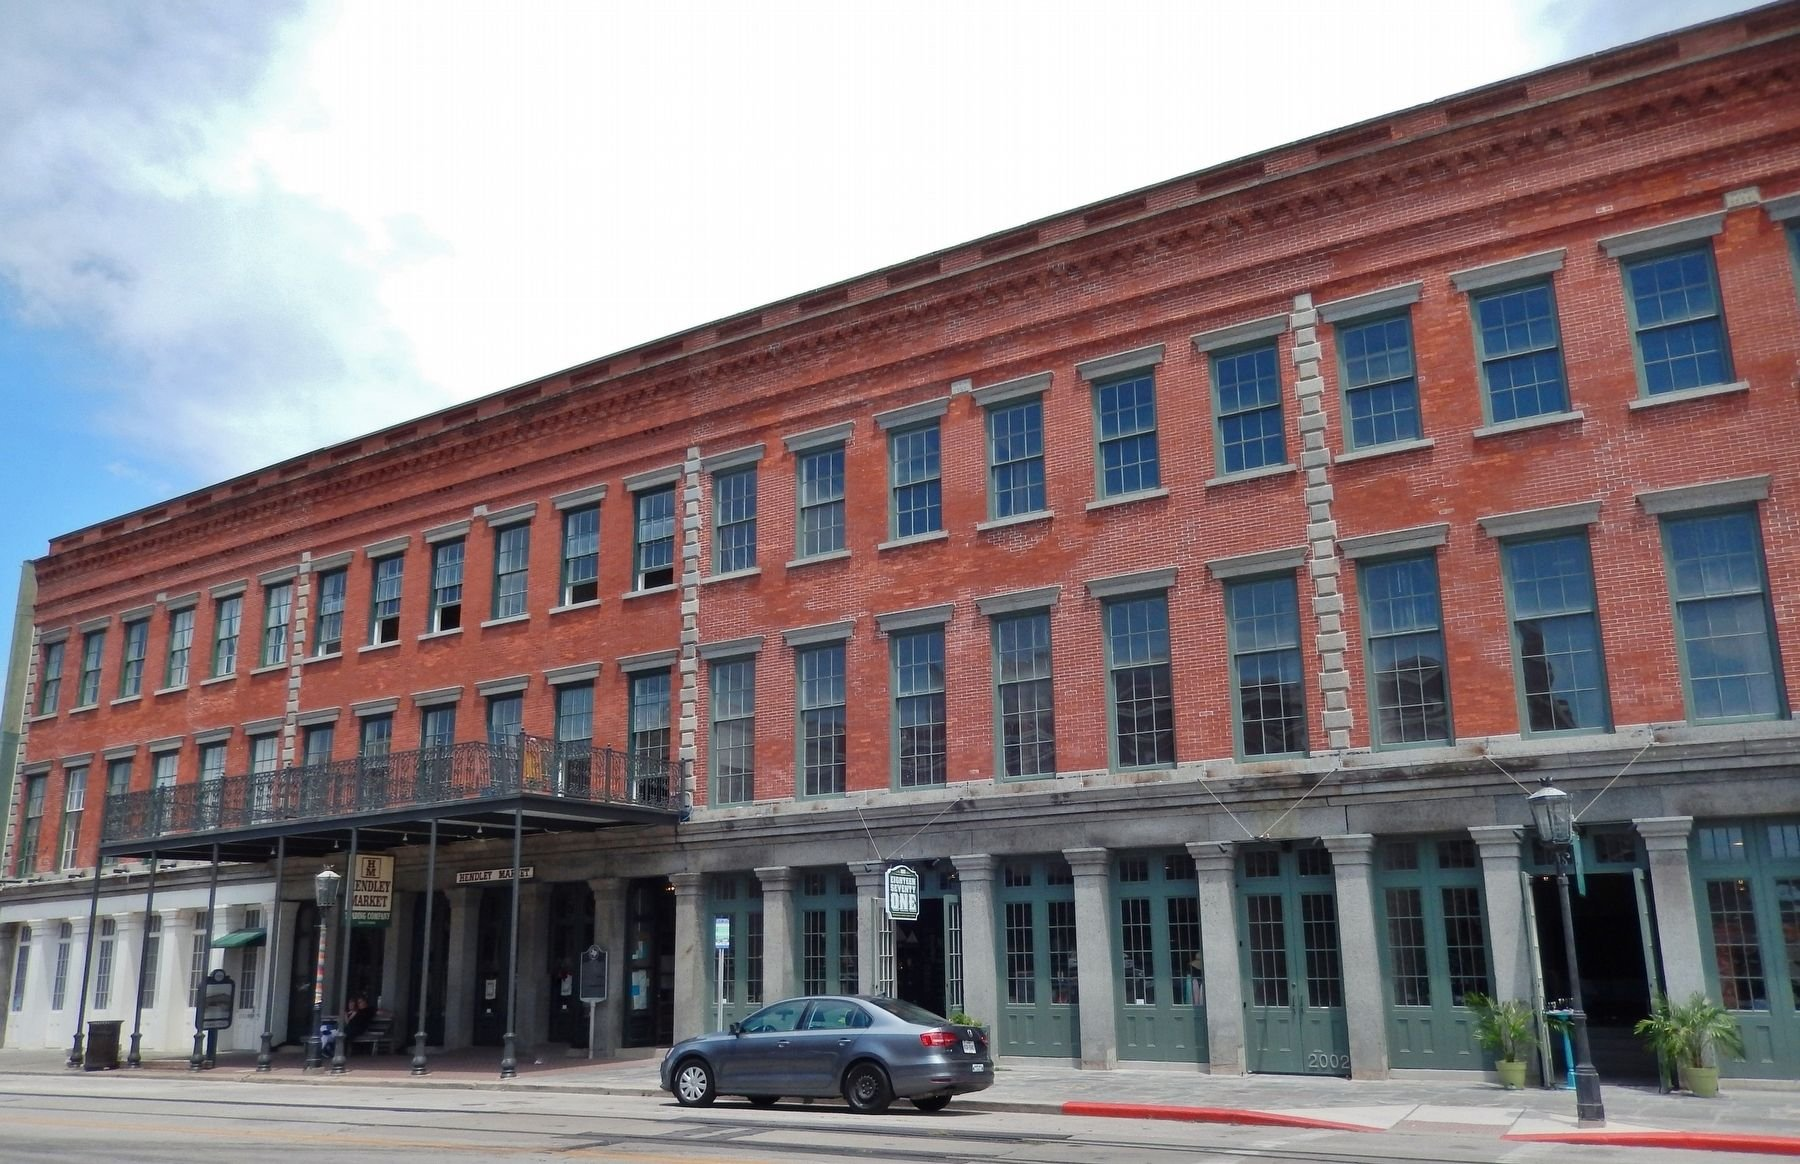 The Hendley Building was restored in 2015 and is now home to retailers.